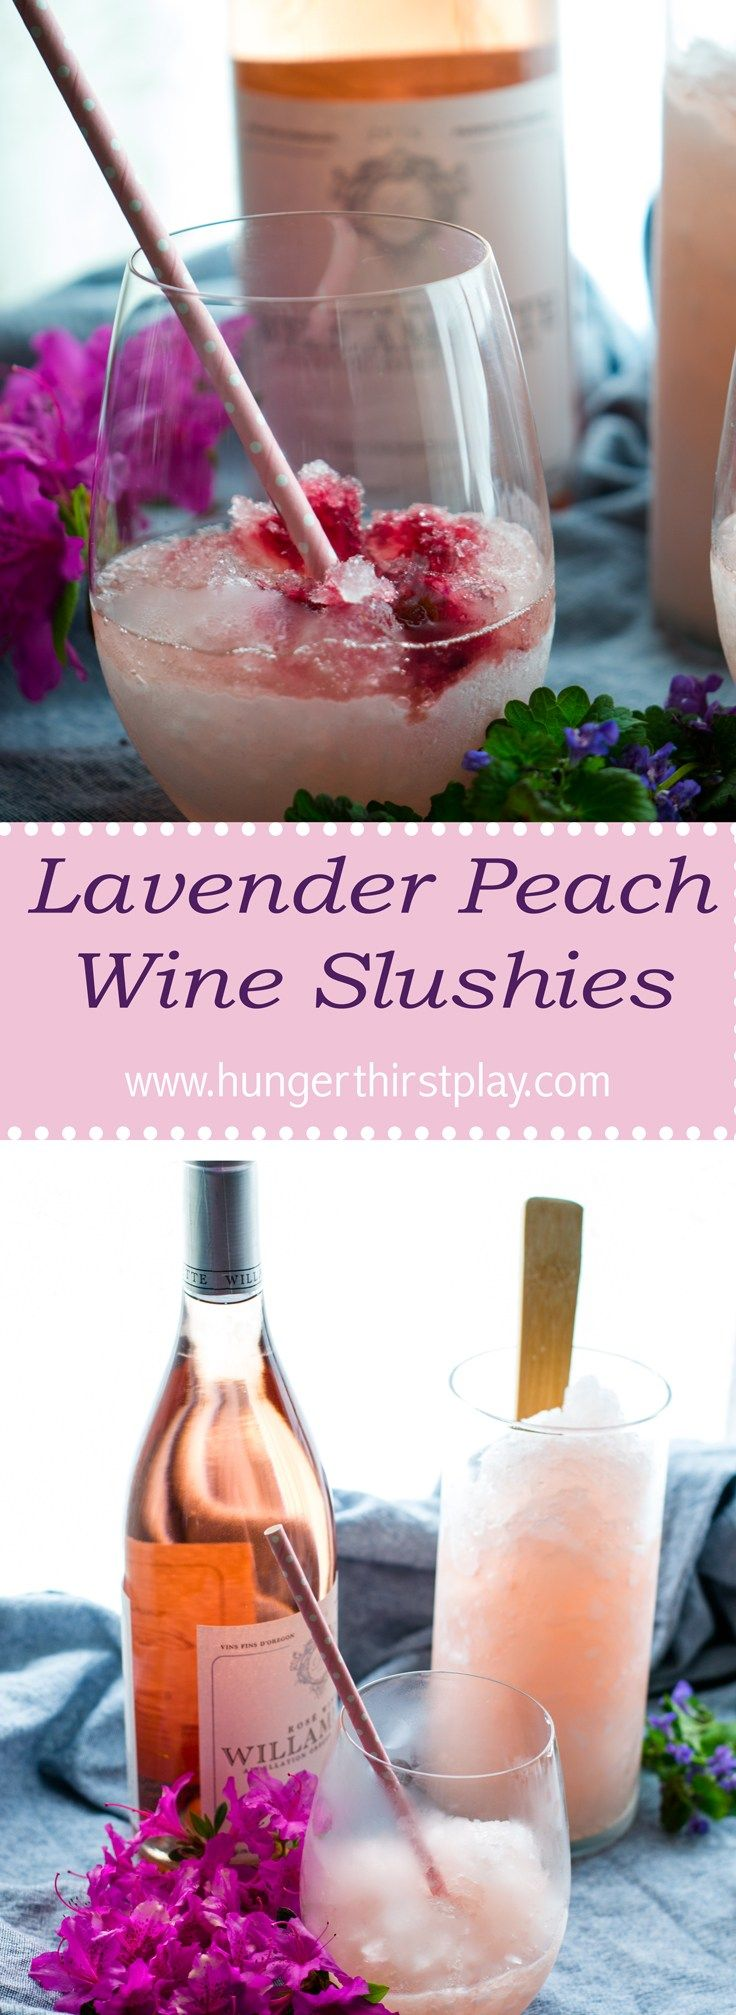 Lavender Peach Wine Slushies | Slighty floral with a perfect pink color.  Easy to make and perfect for your next brunch or BBQ!